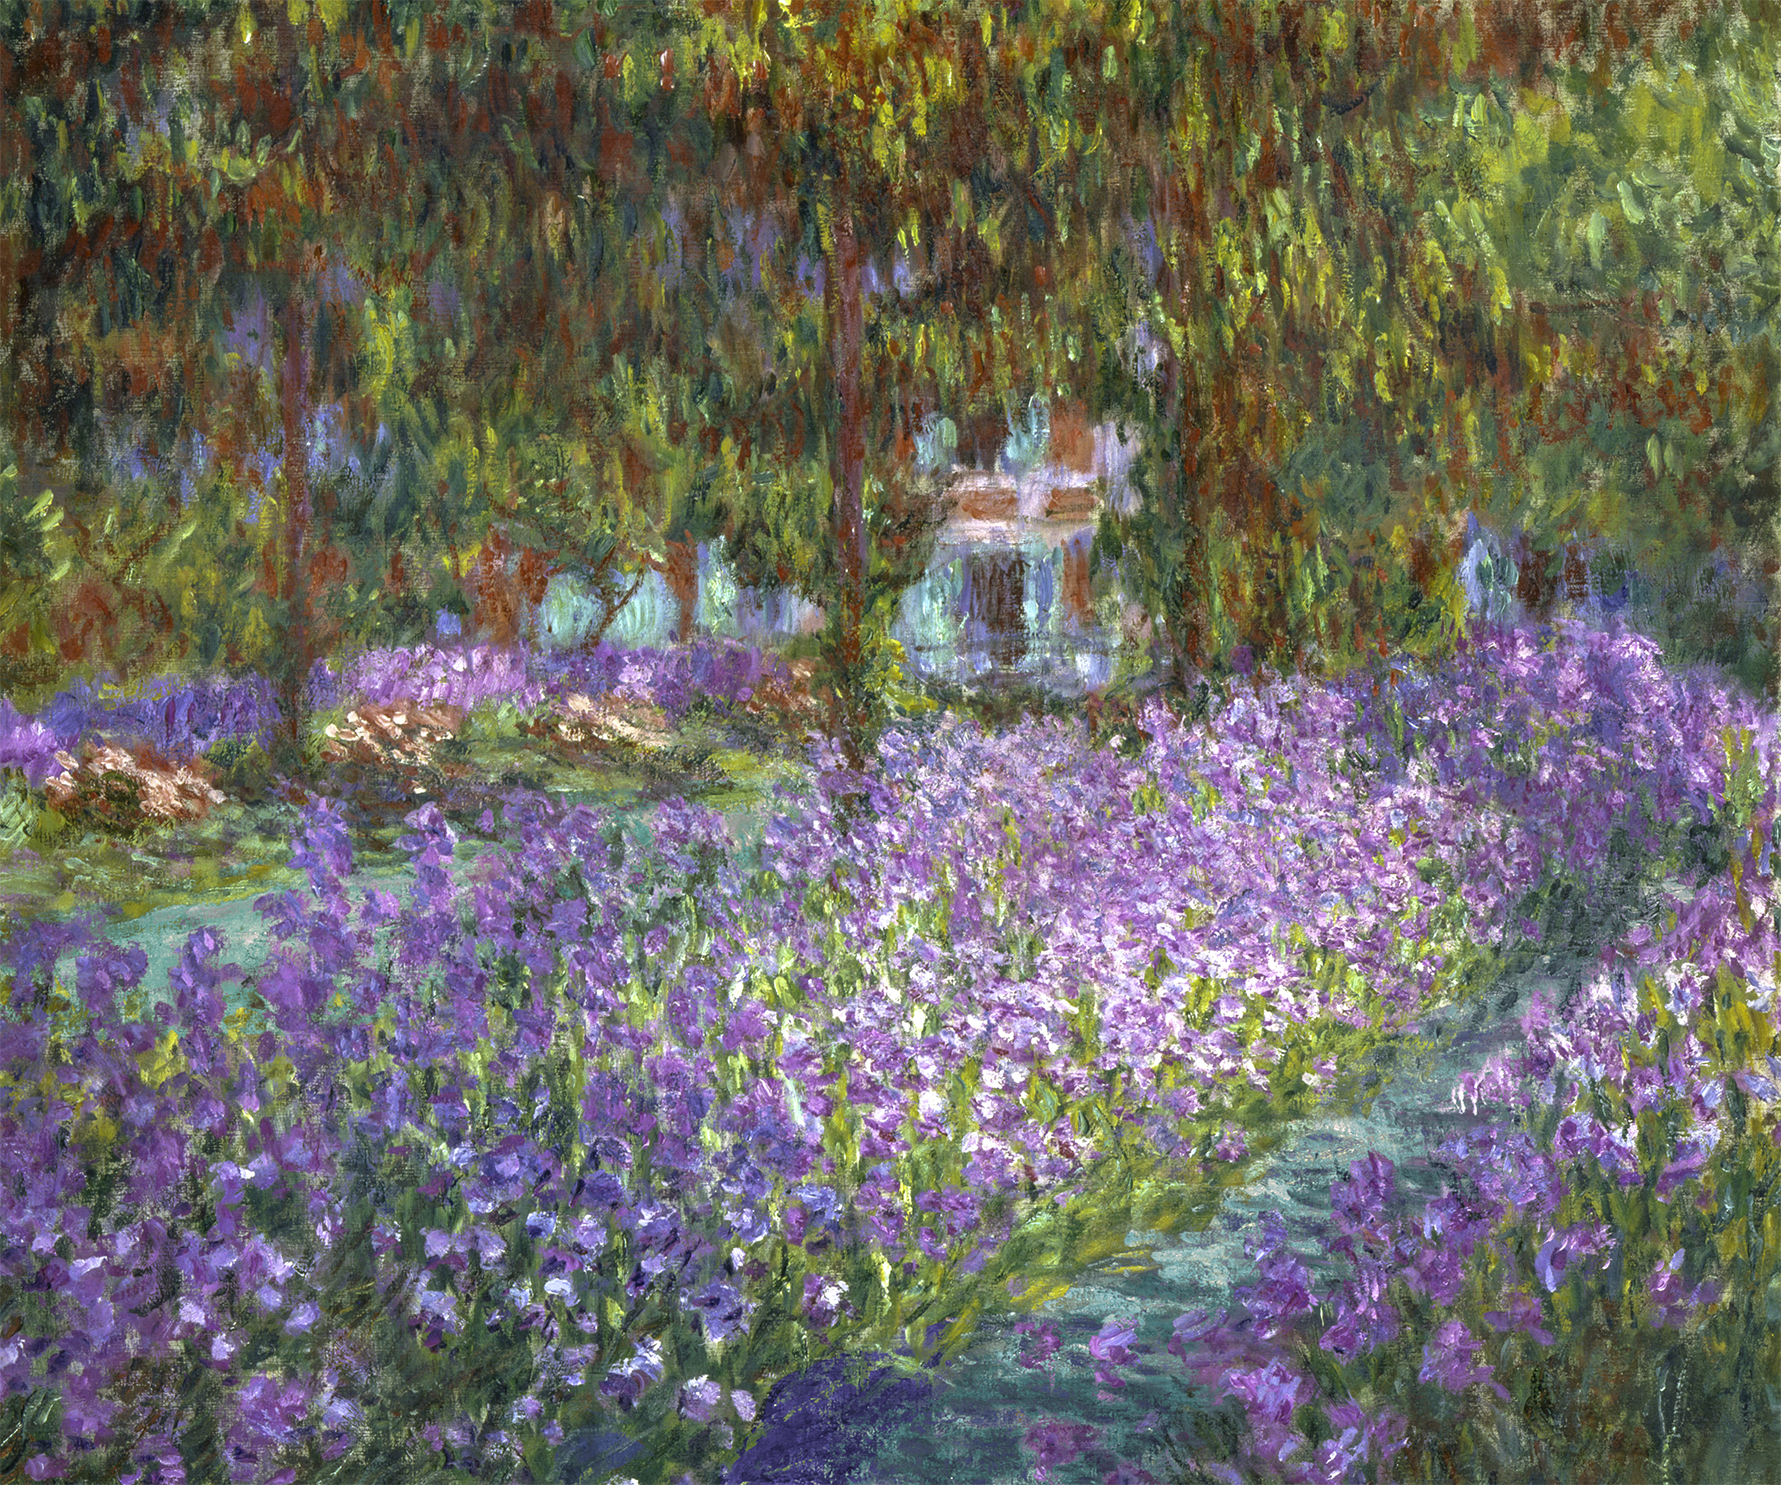 a play and after of monet's garden in the artist's paradise series of irises in a green garden through which rivers flow by a house obscured by trees